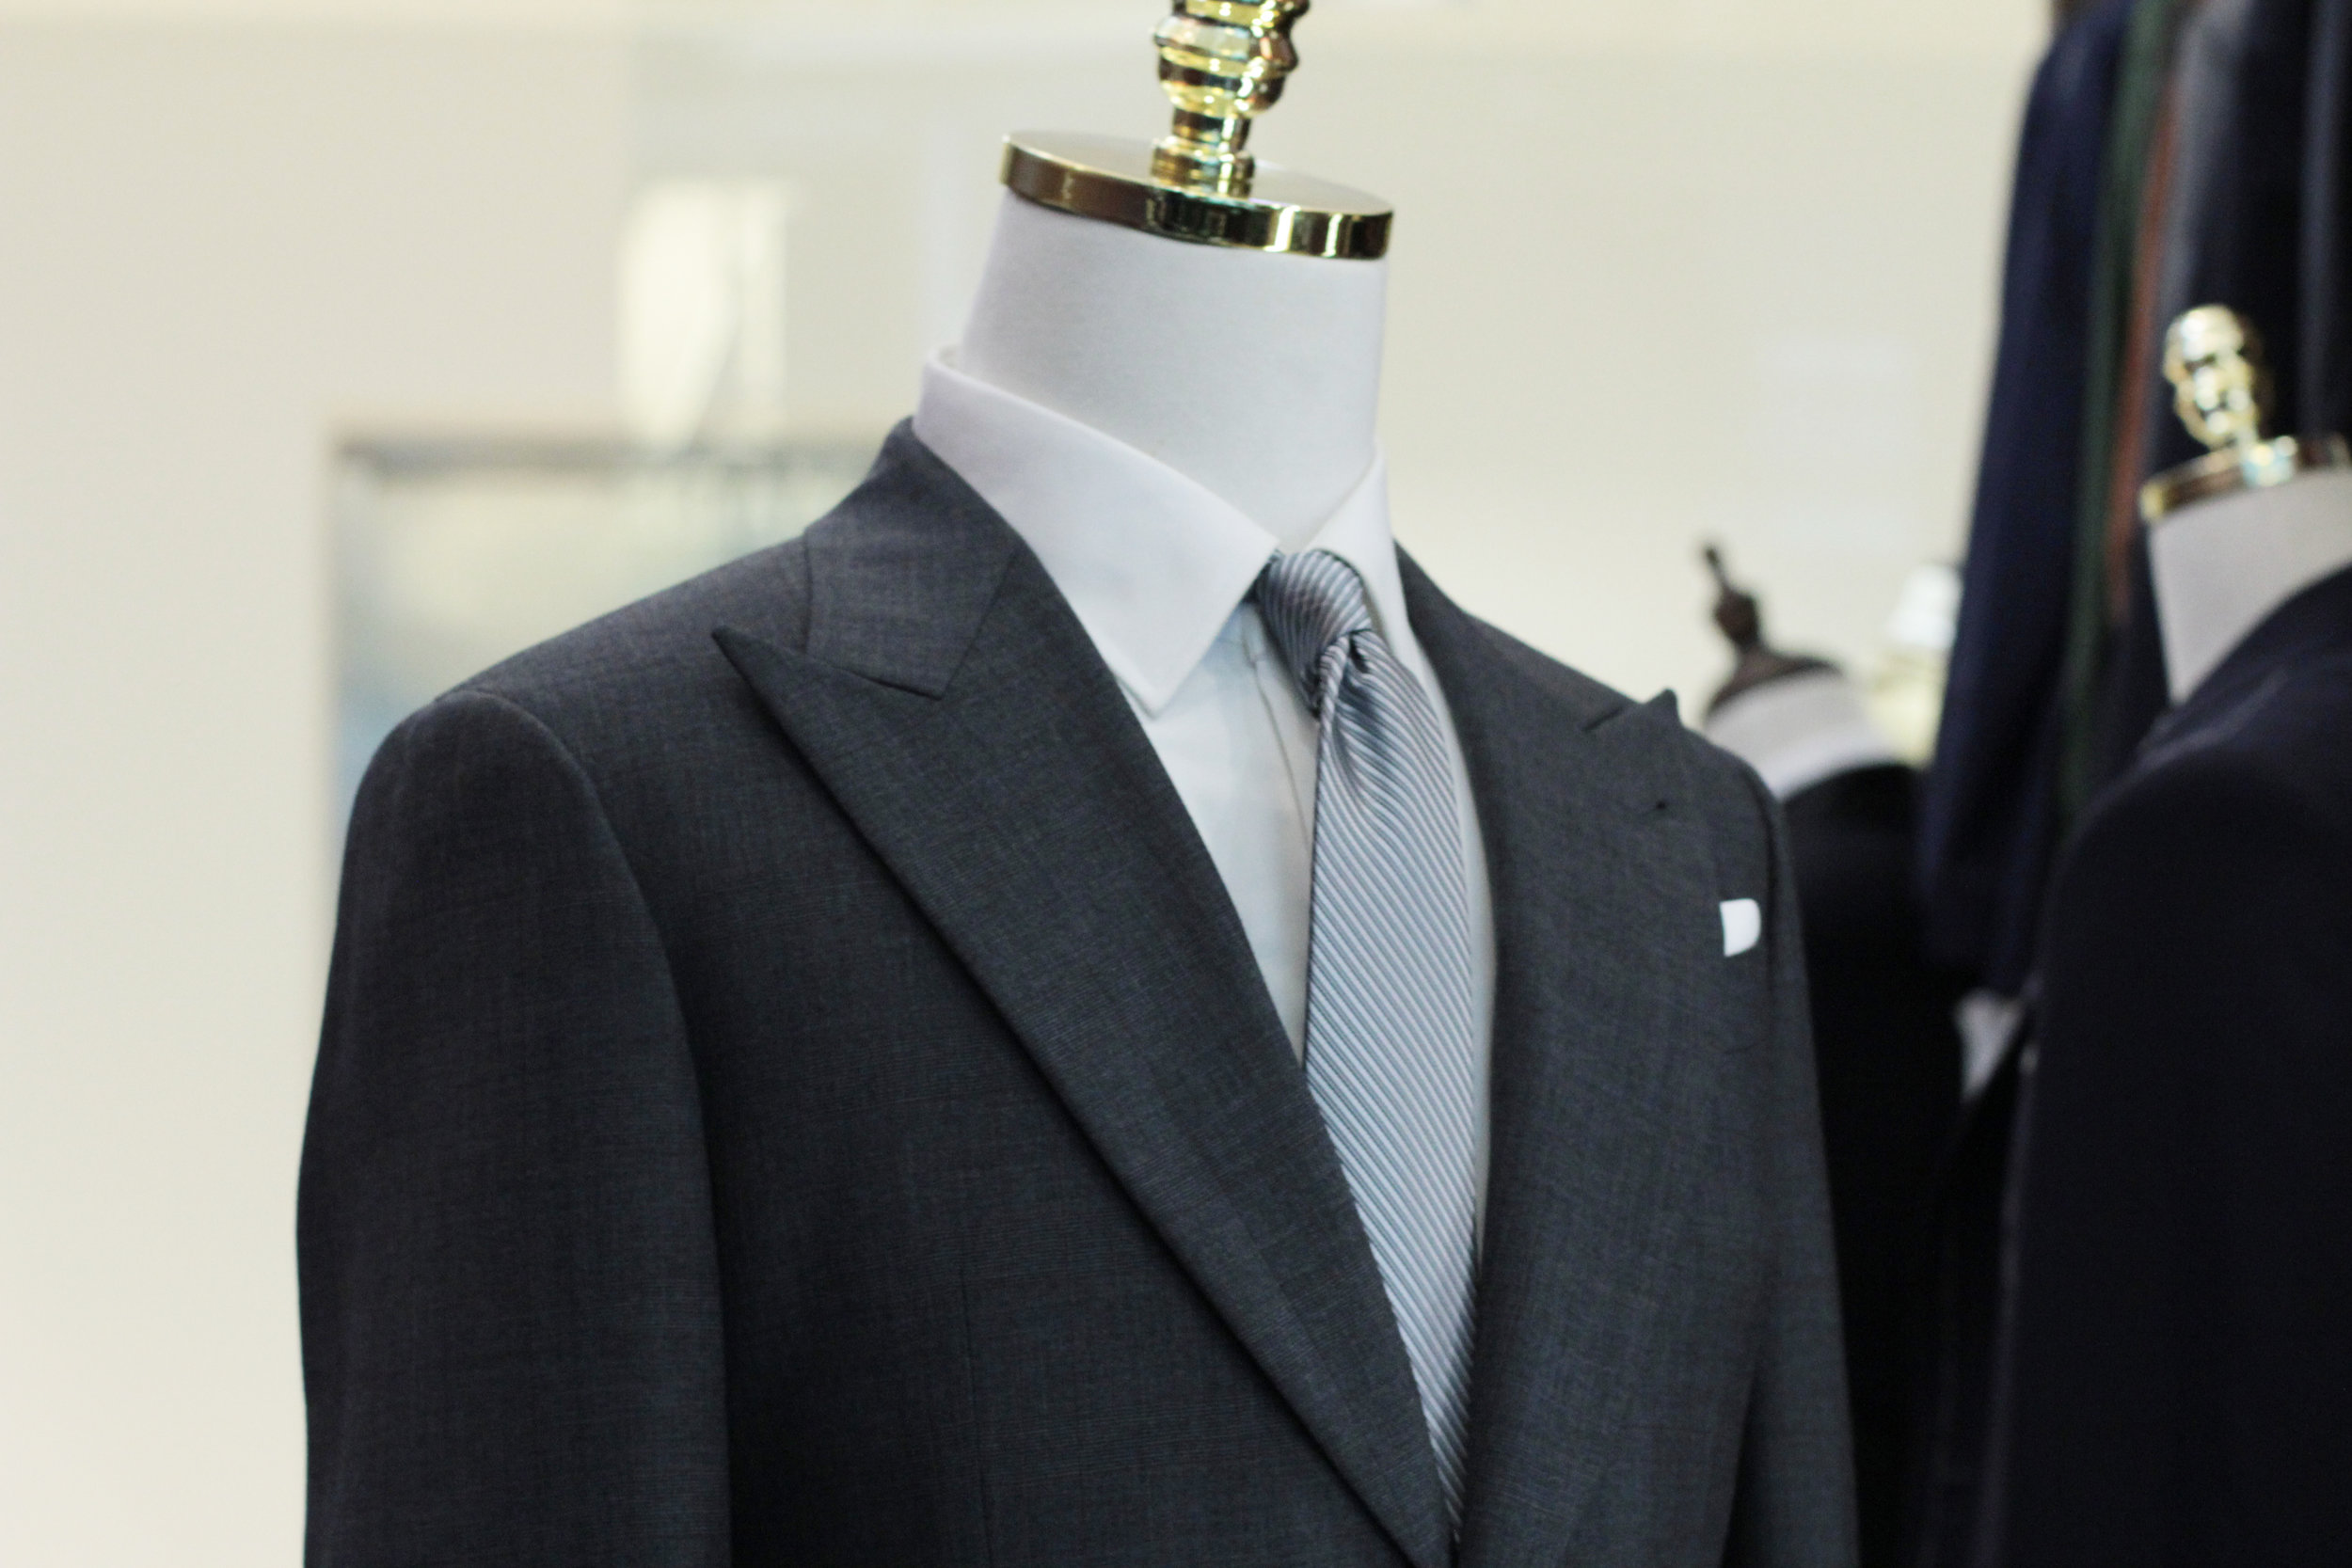 The Privacy Made Suits | Singapore Made to Measure | Bespoke Tailor front.JPG